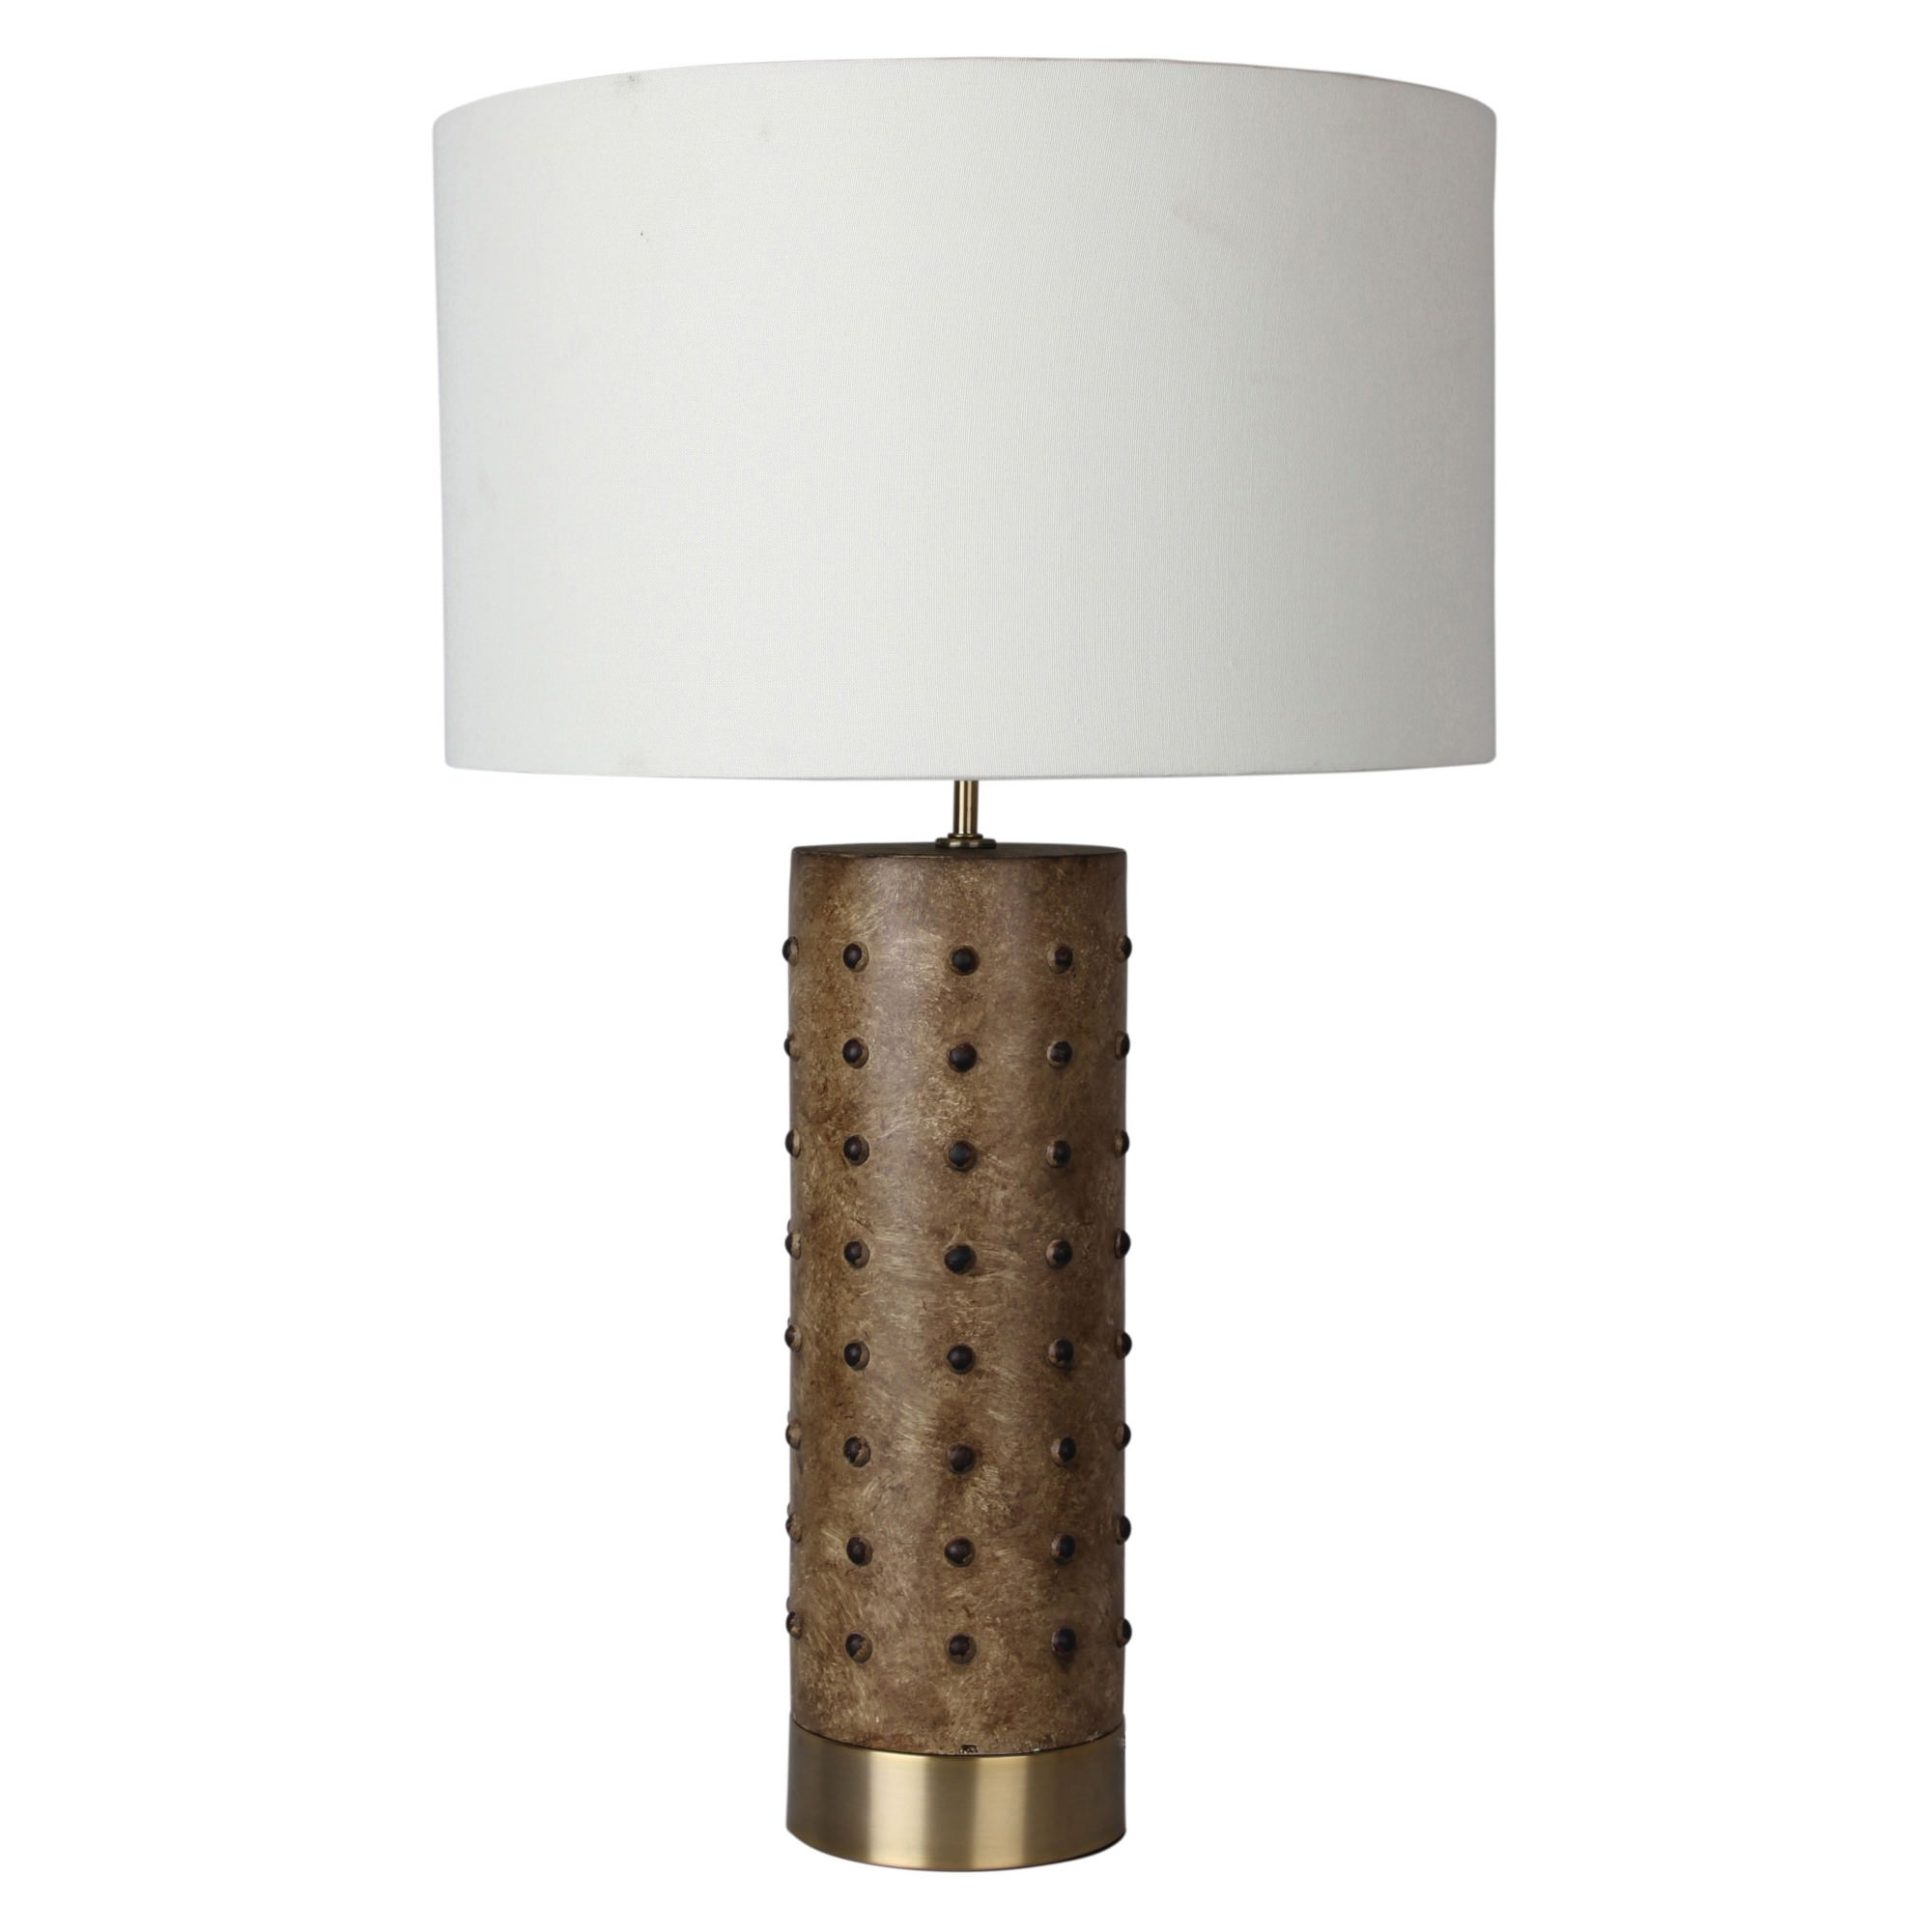 Ivar Leather Look Table Lamp